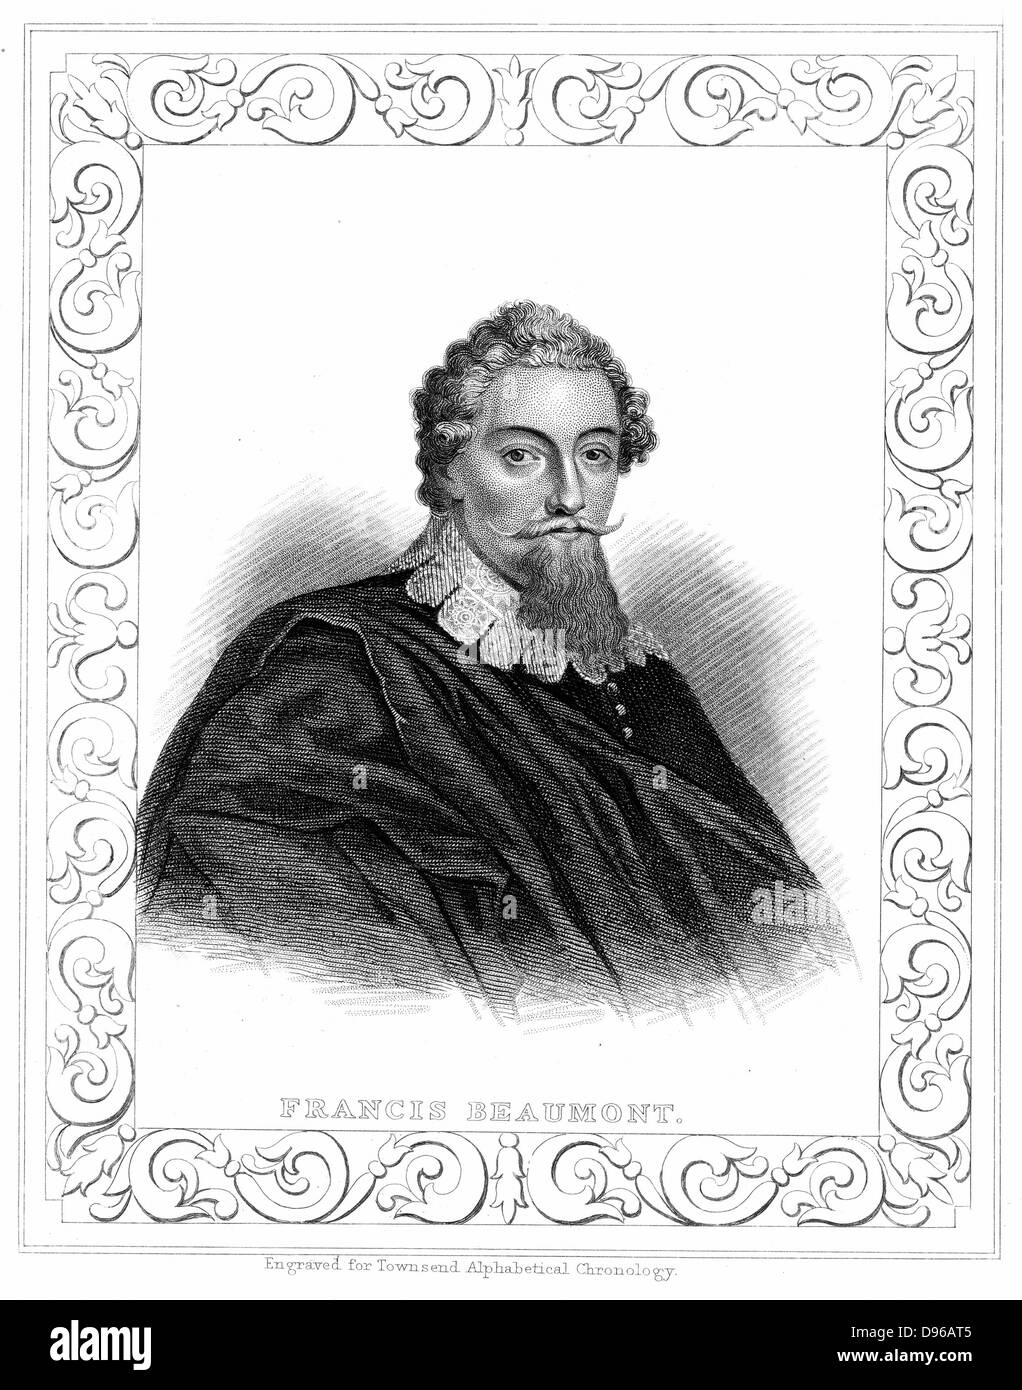 Francis Beaumont (1584-1616) English playwright and poet. Collaborated with playwright John Fletcher. Engraving - Stock Image